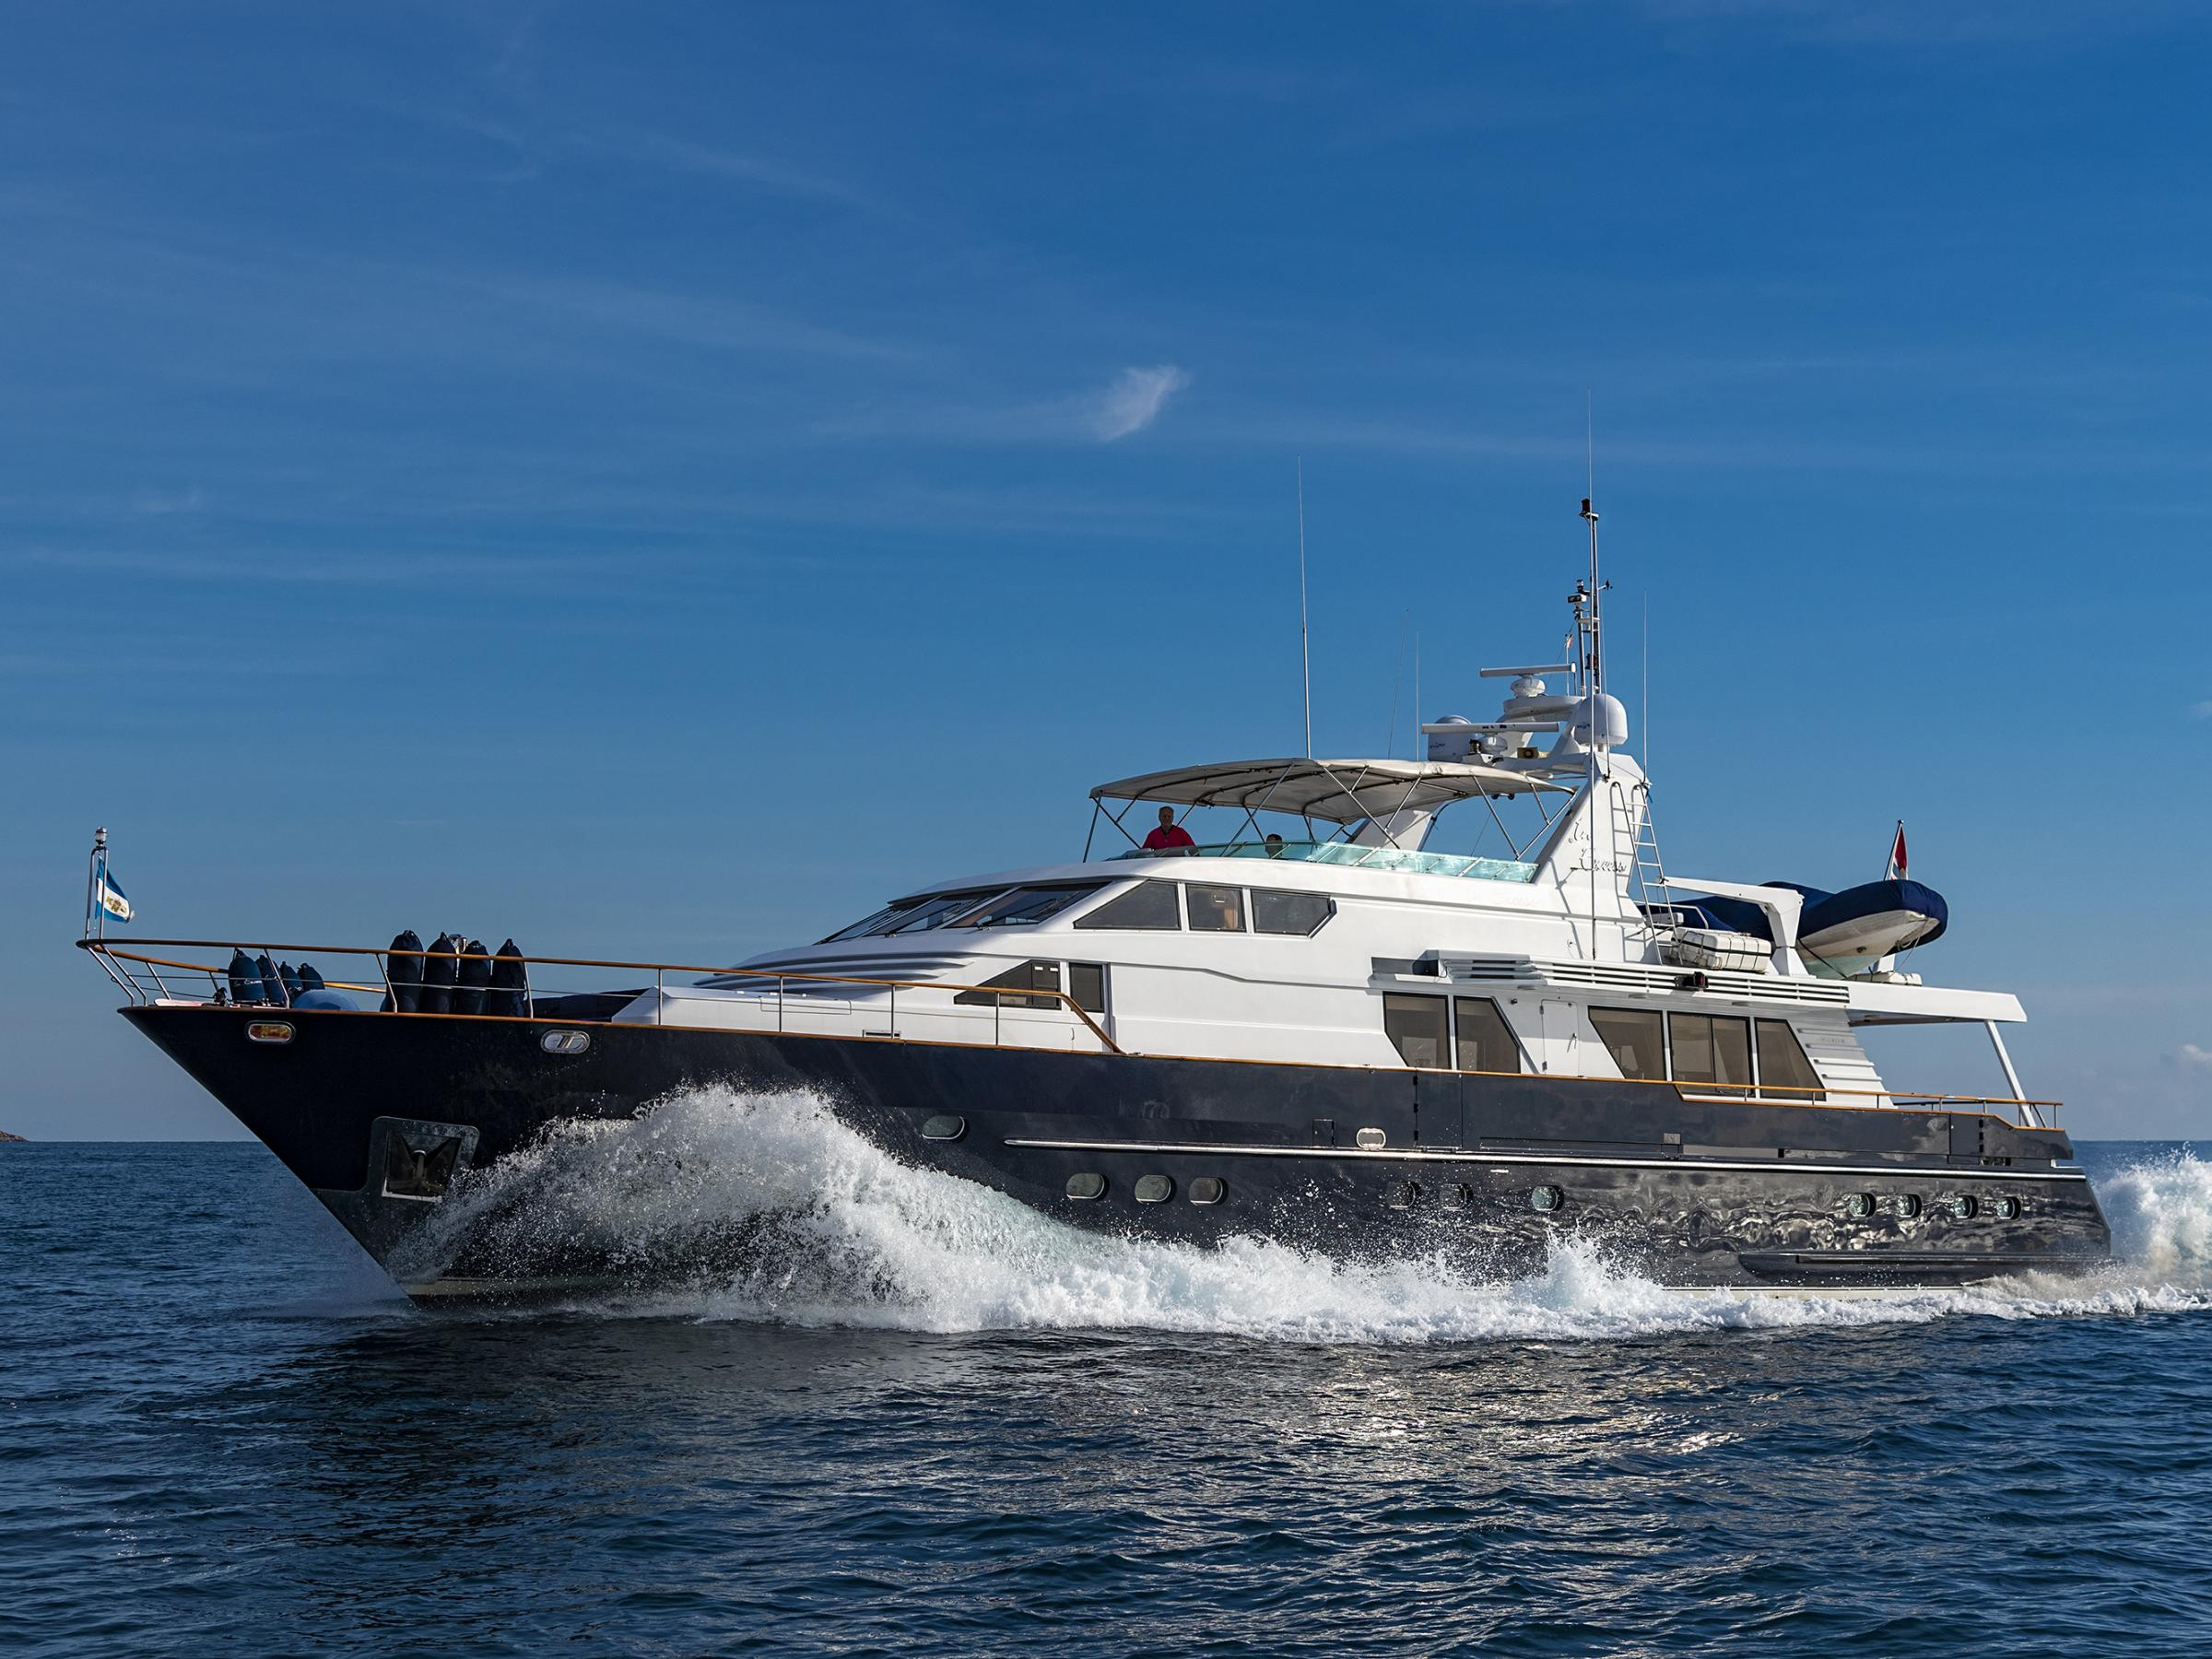 A major price reduction for the Lowland Netship 97, designed by De Vries Lentsch and named In Excess